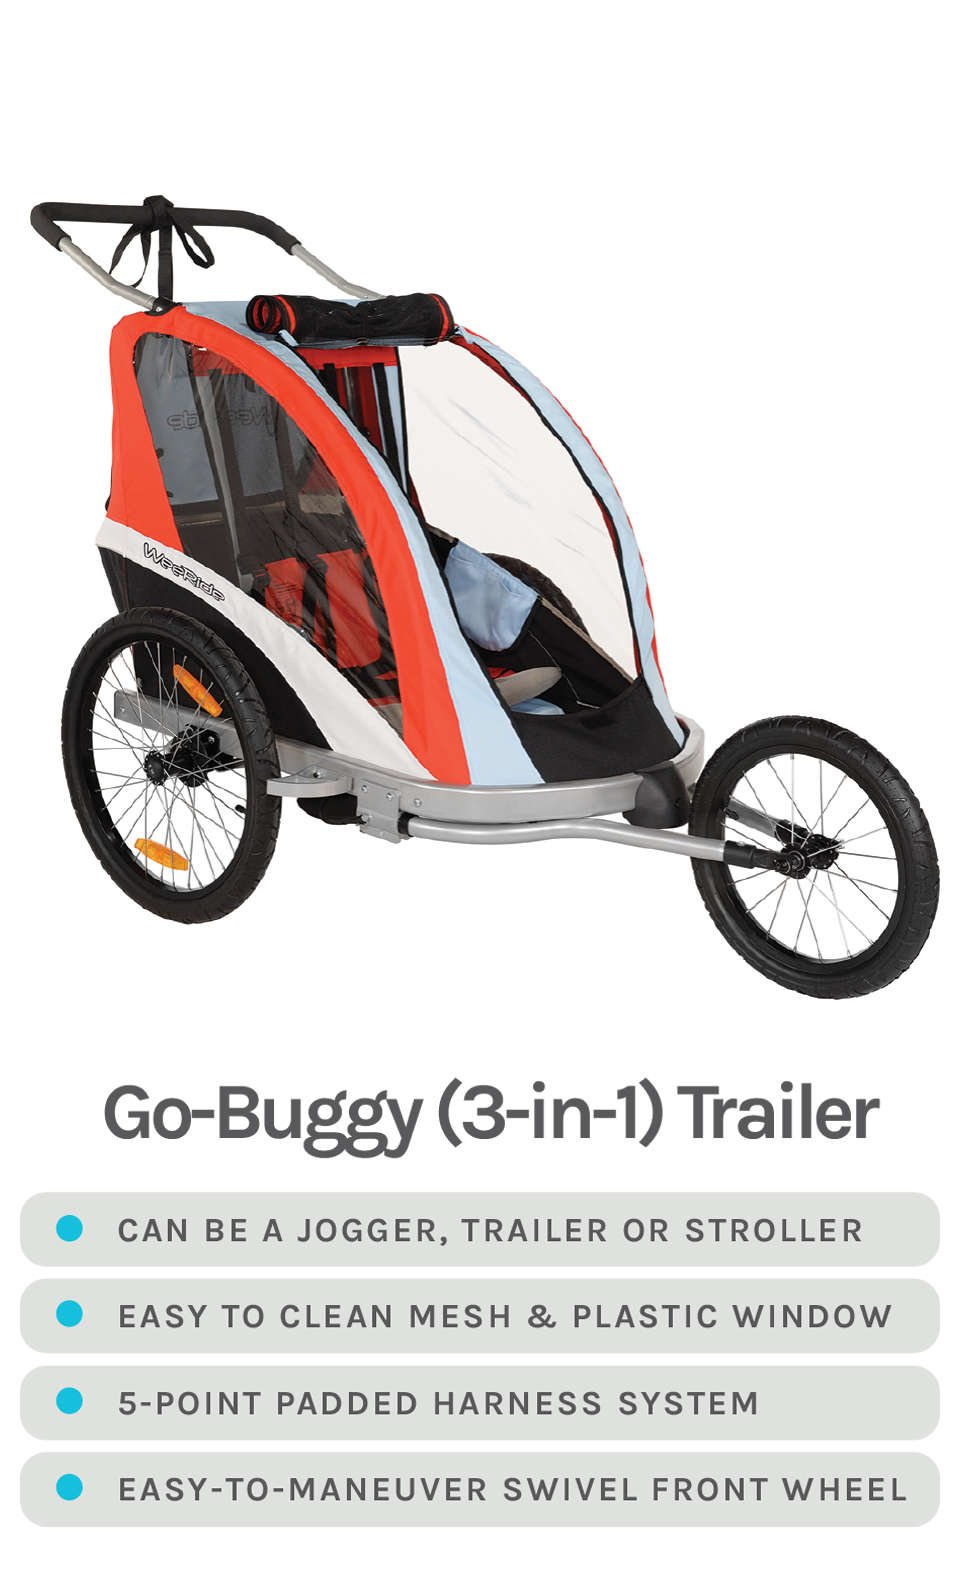 Go-Buggy (3-in-1) Trailer - Can be a Jogger, Trailer, or Stroller, Easy to Clean Mesh & Plastic Window, 5-Point Padded Harness System, Easy-to-Maneuver Swivel Front Wheel - Red, Black and Grey Plastic Casing